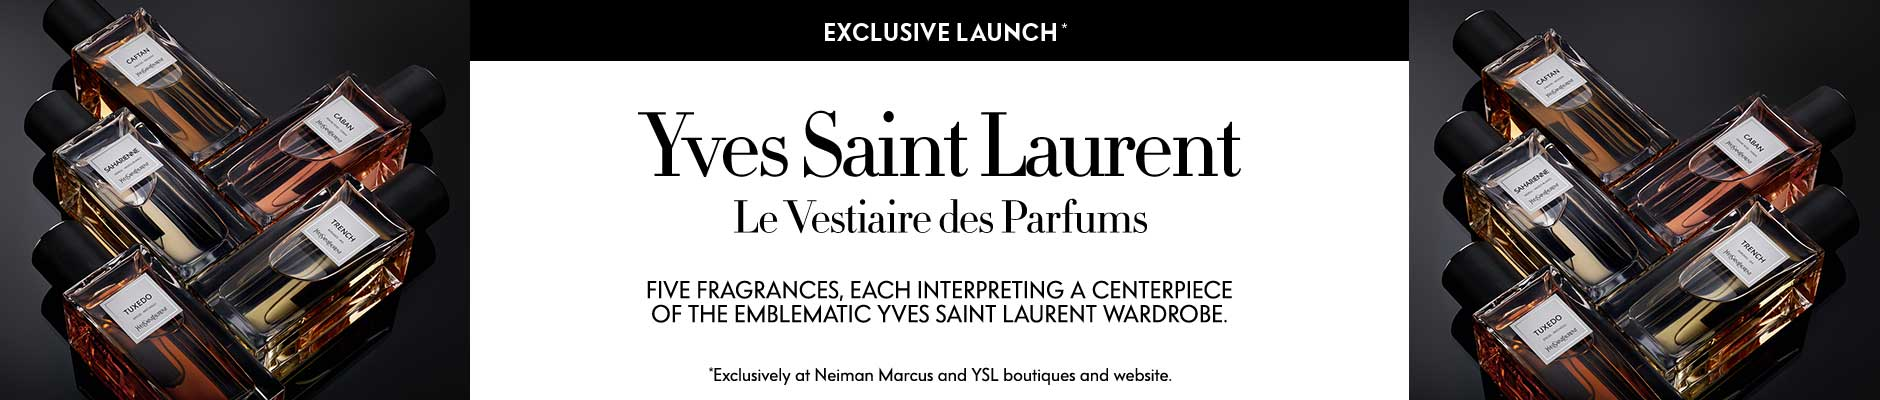 Yves Saint Laurent: Le Vestiaire des Parfums - Five fragrances, each interpreting a centerpiece of the emblematic Yves Saint Laurent Wardrobe.